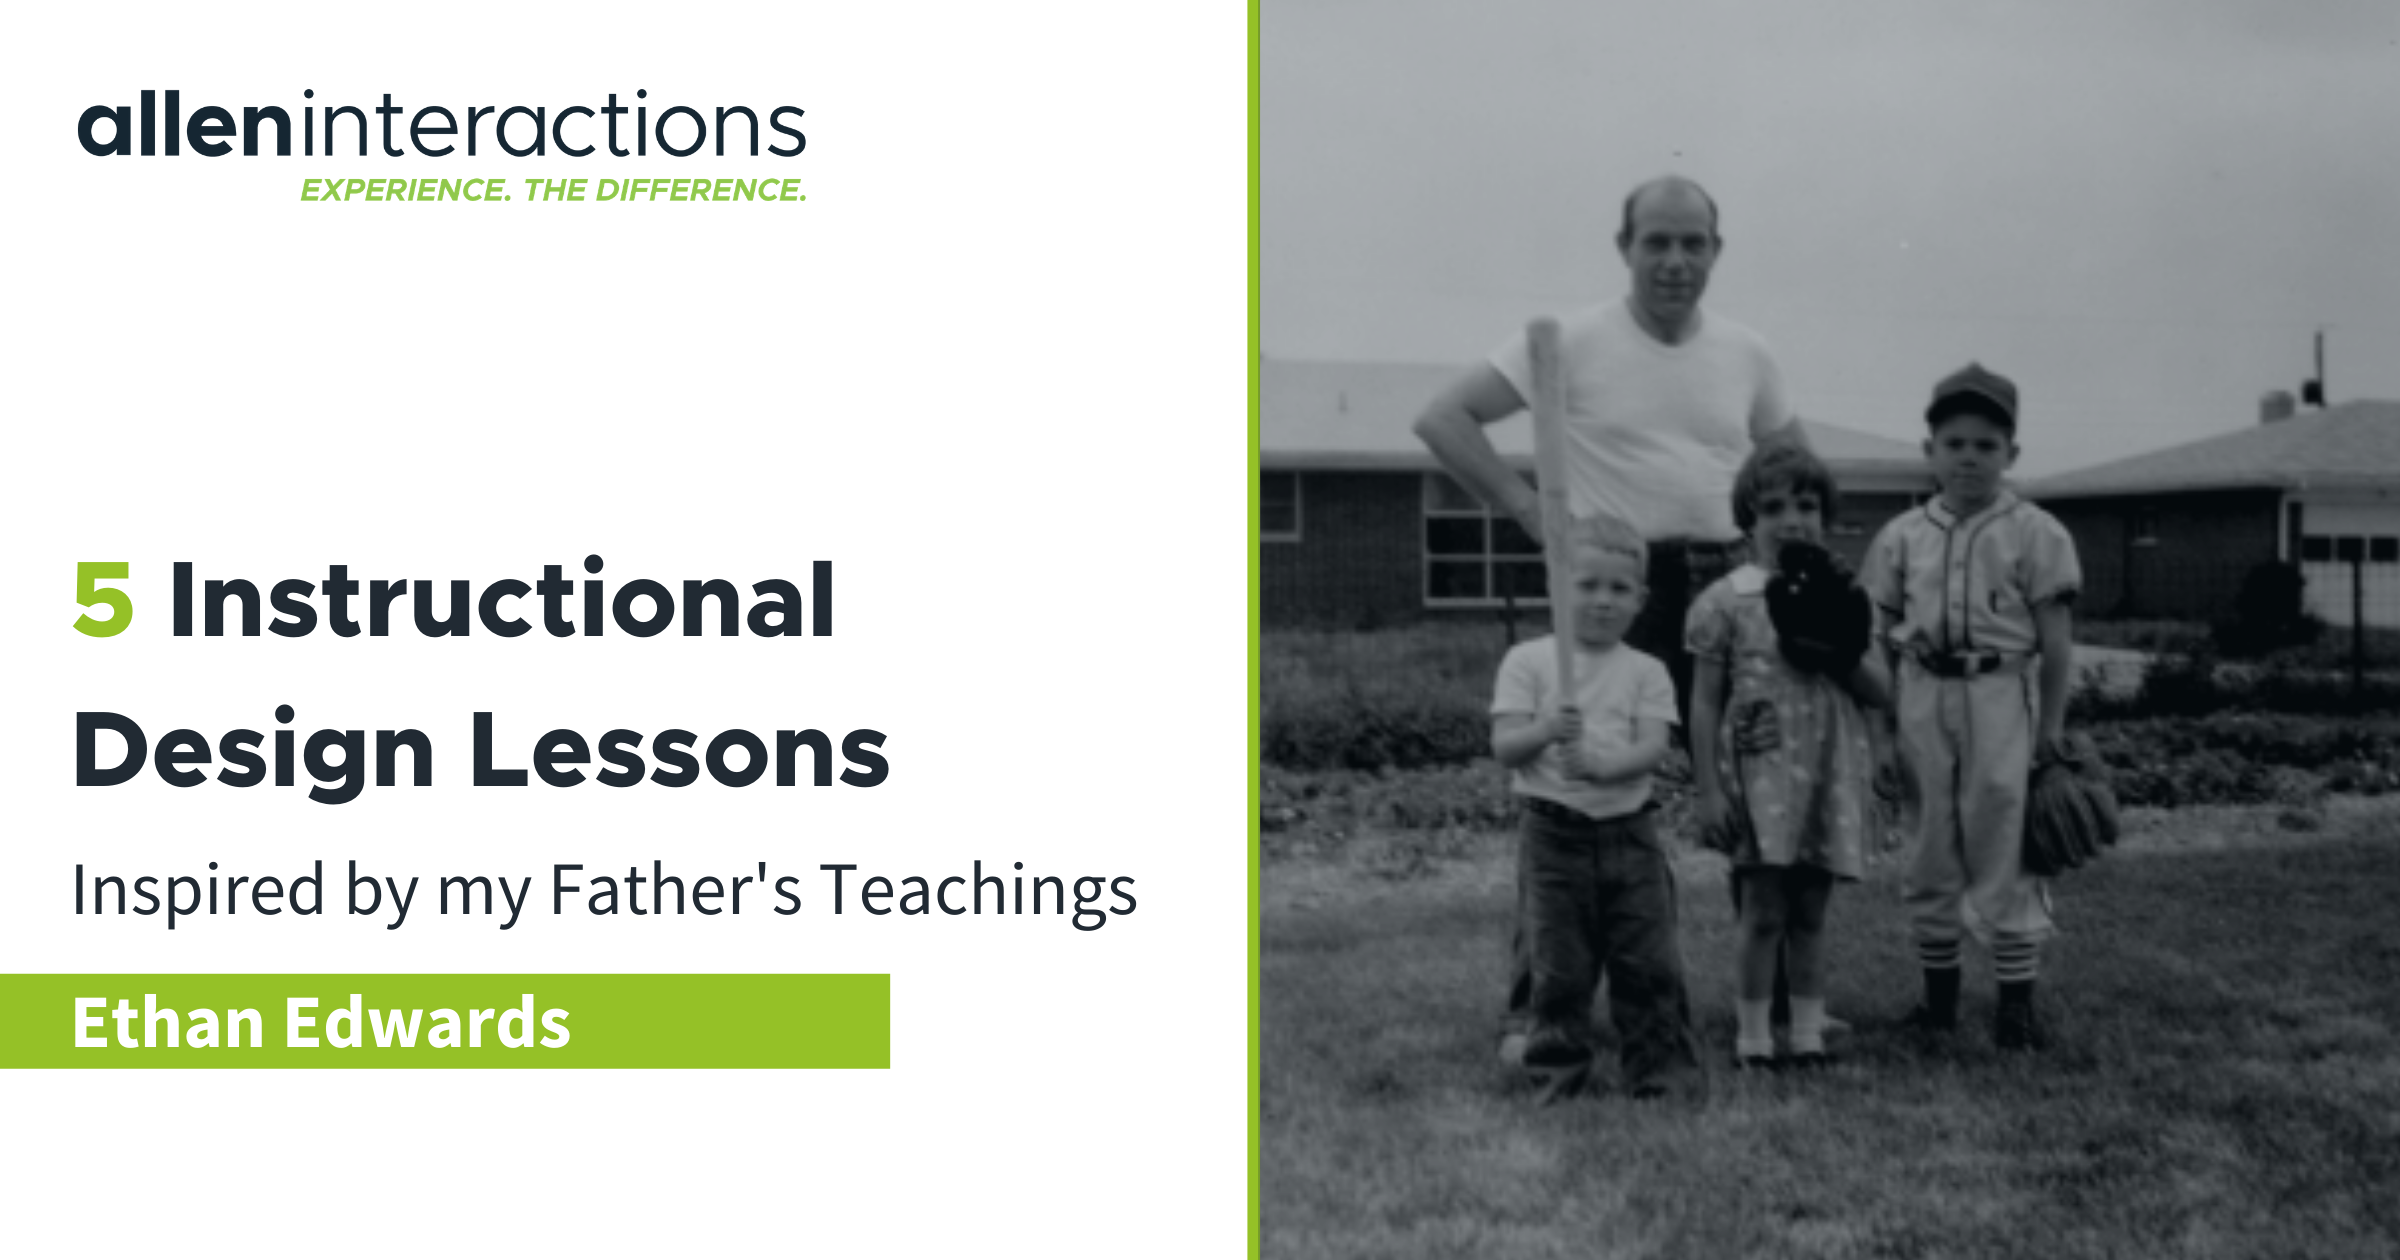 5 Instructional Design Lessons Inspired by my Father's Teachings